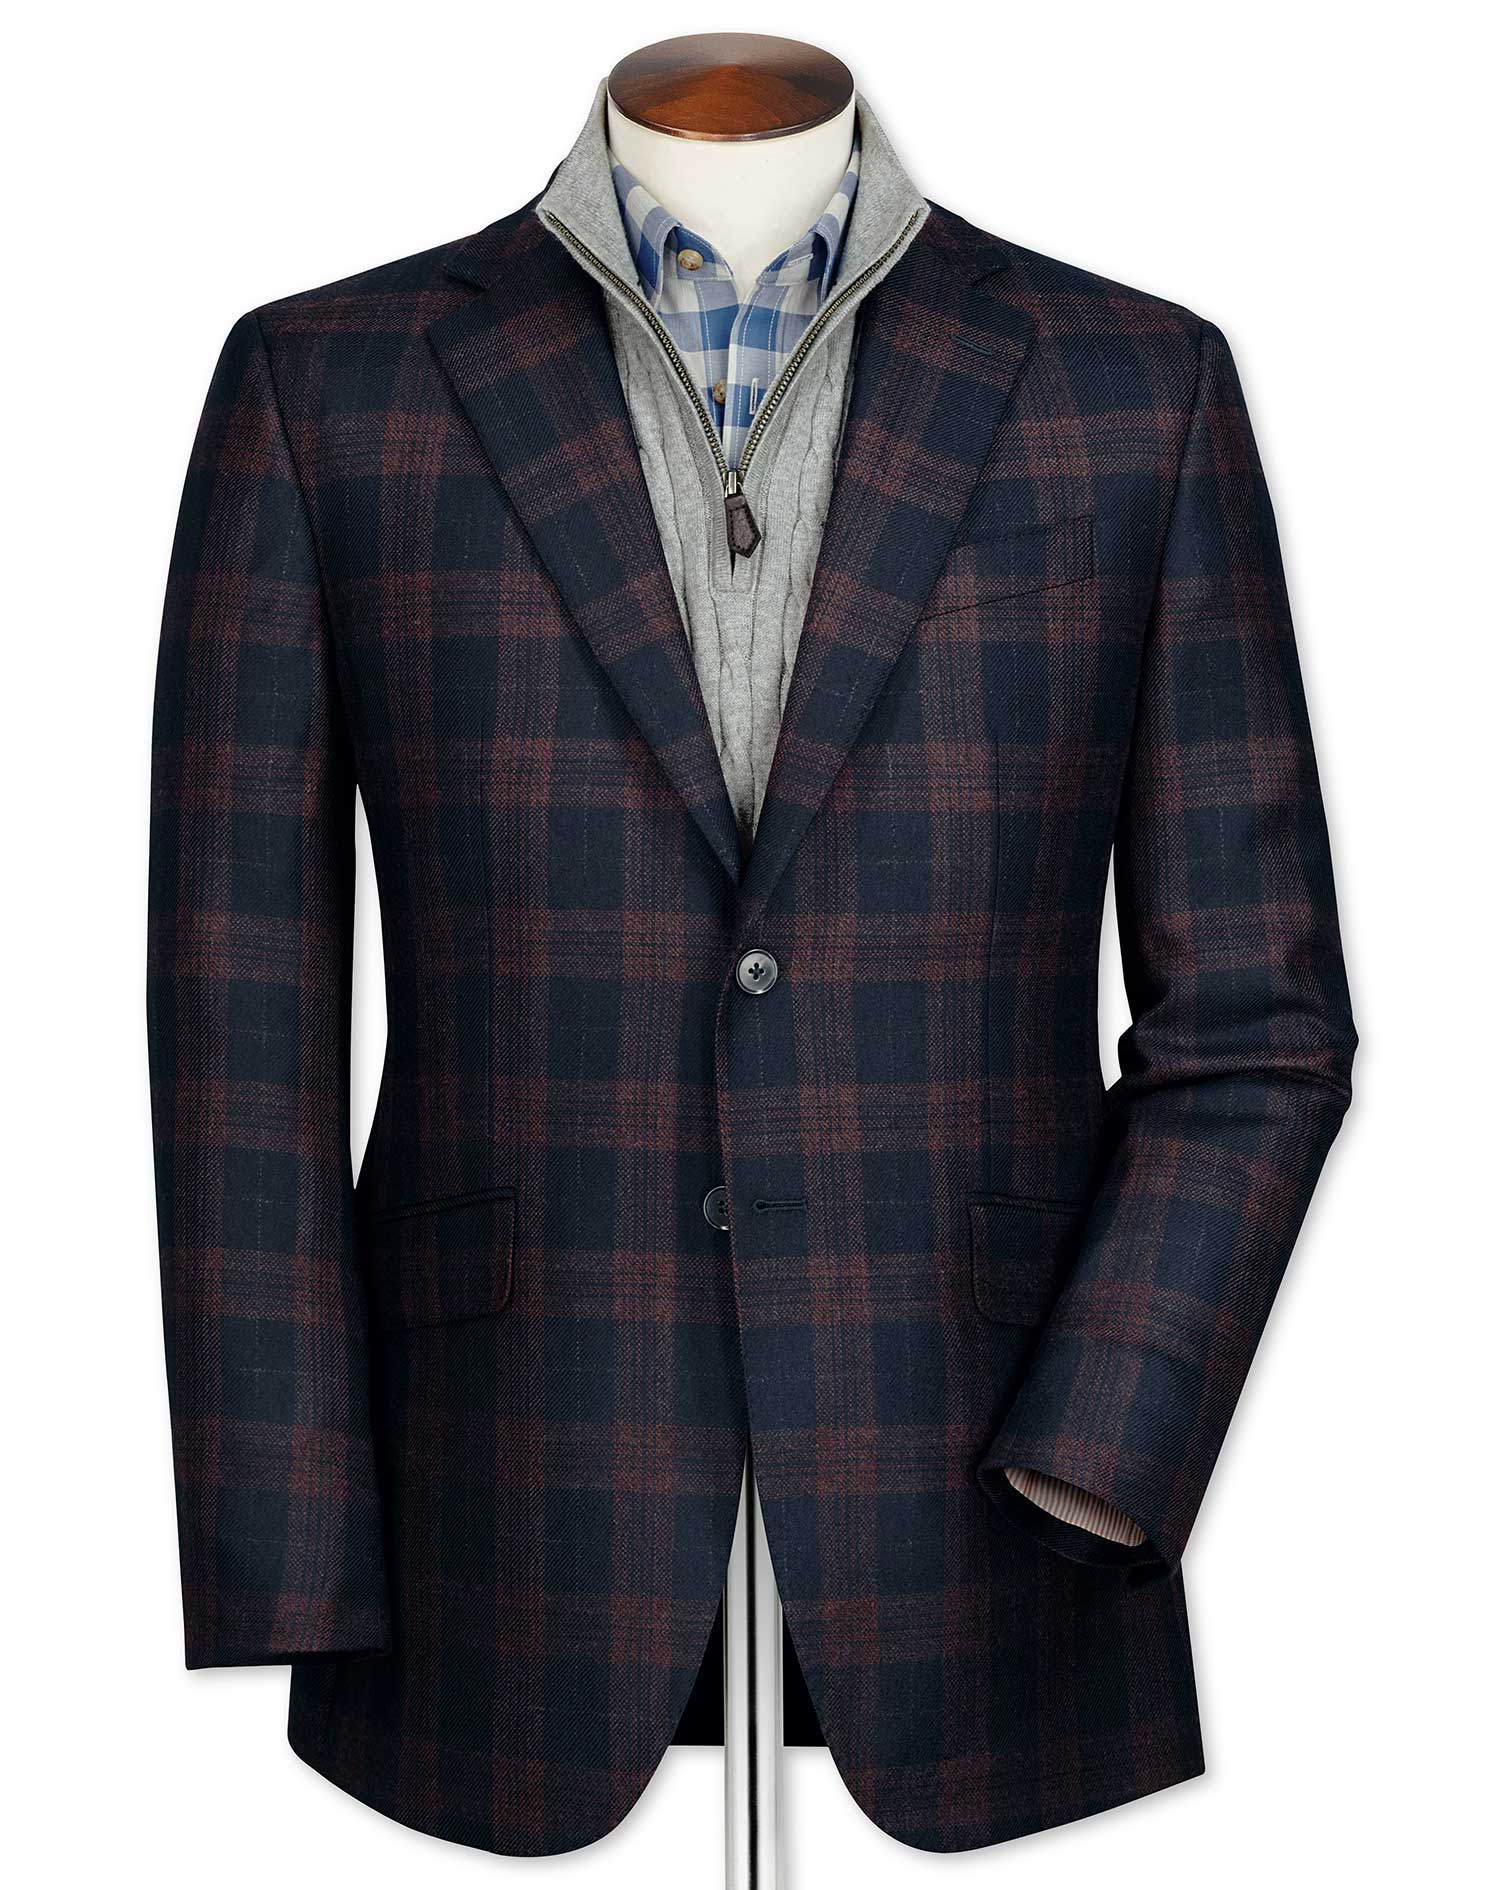 Slim Fit Navy Checkered Lambswool Wool Jacket Size 40 Long by Charles Tyrwhitt